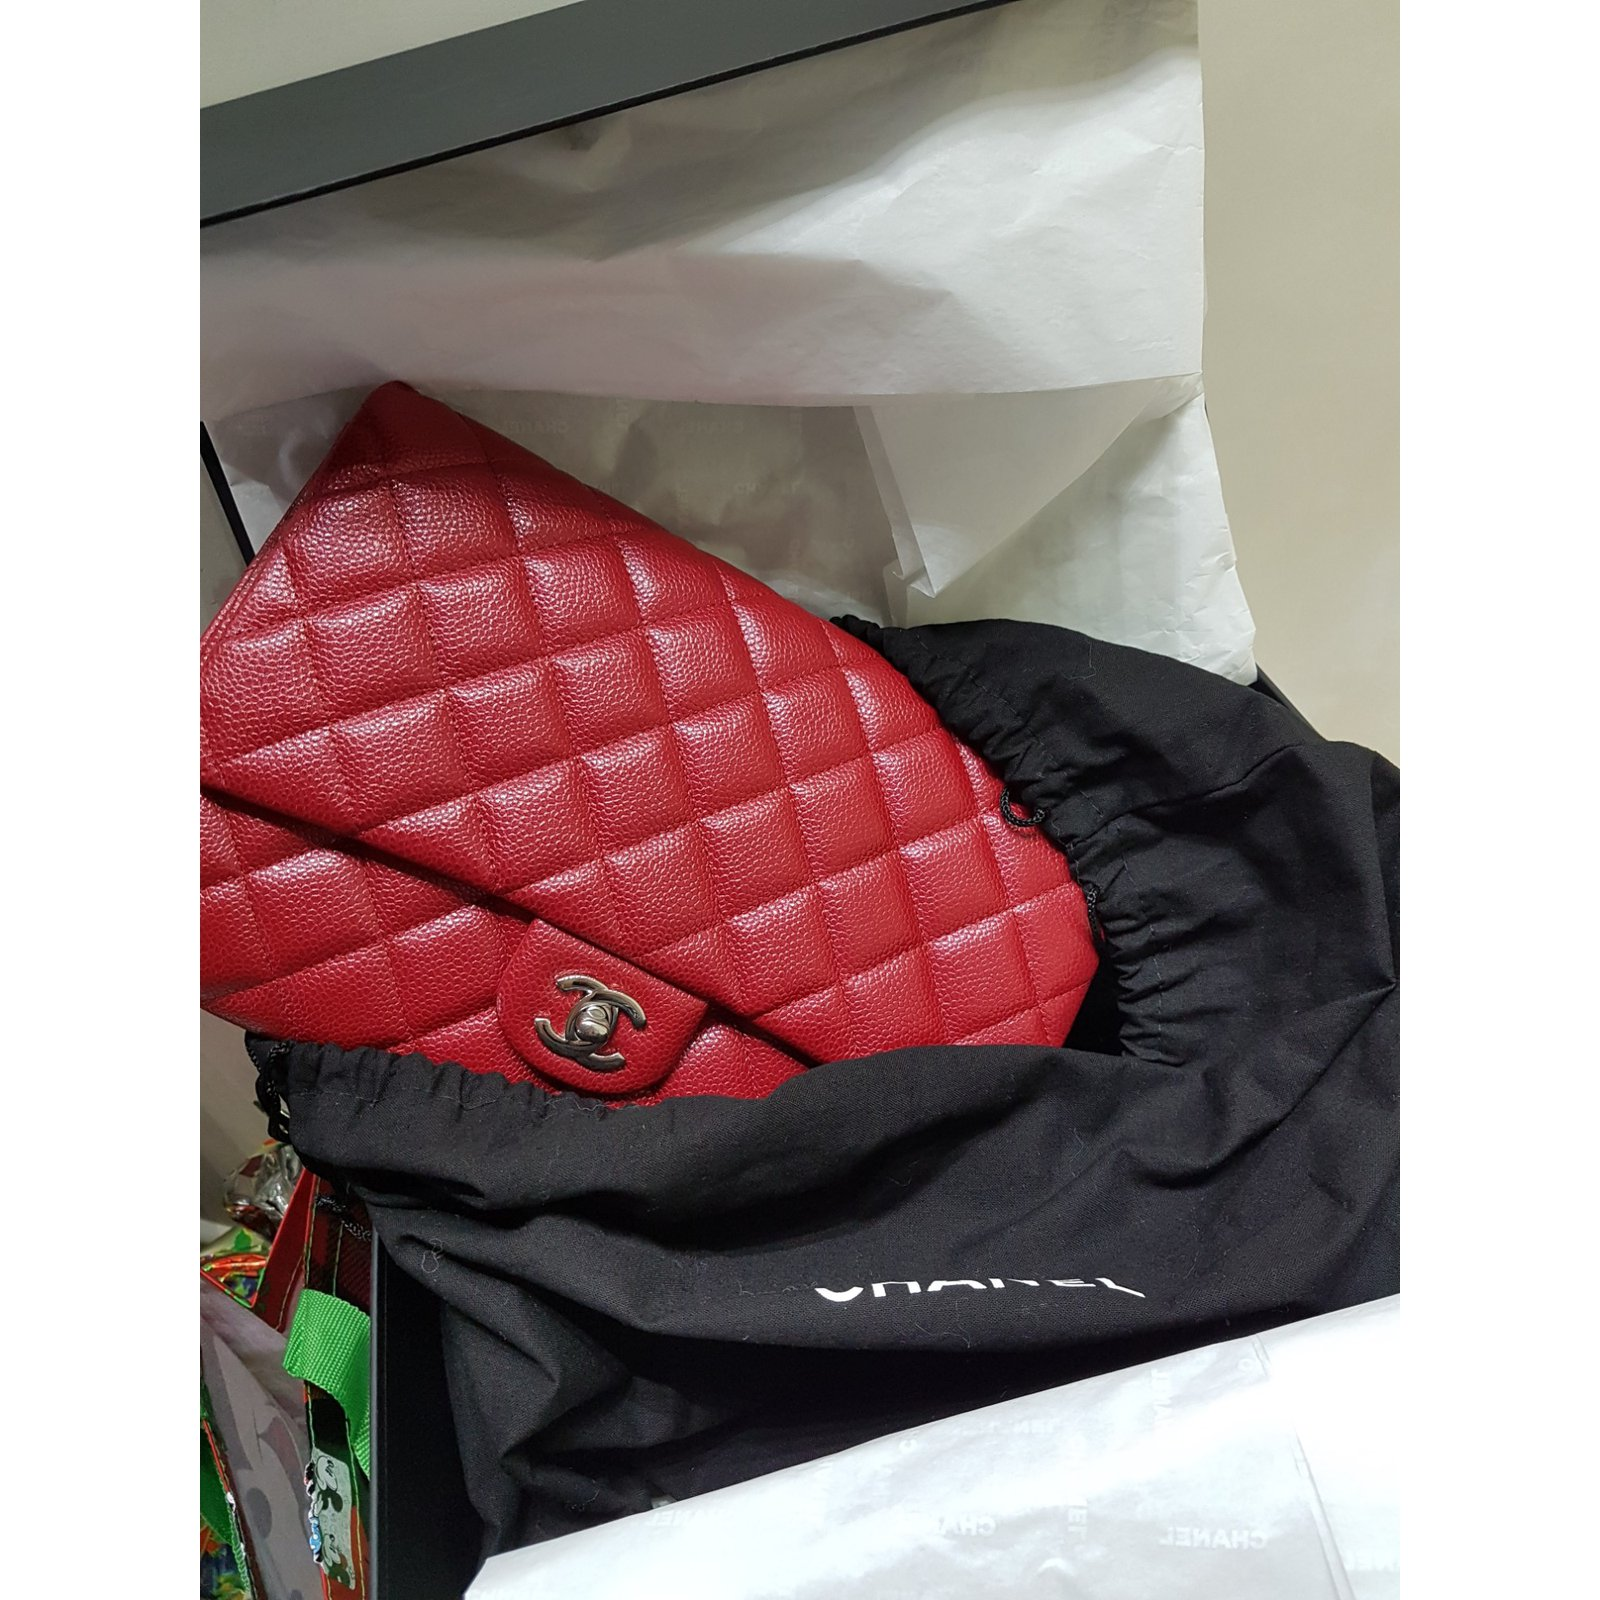 374cbf58c2dc Facebook · Pin This. Chanel Chanel bag Handbags Leather Red ref.102385